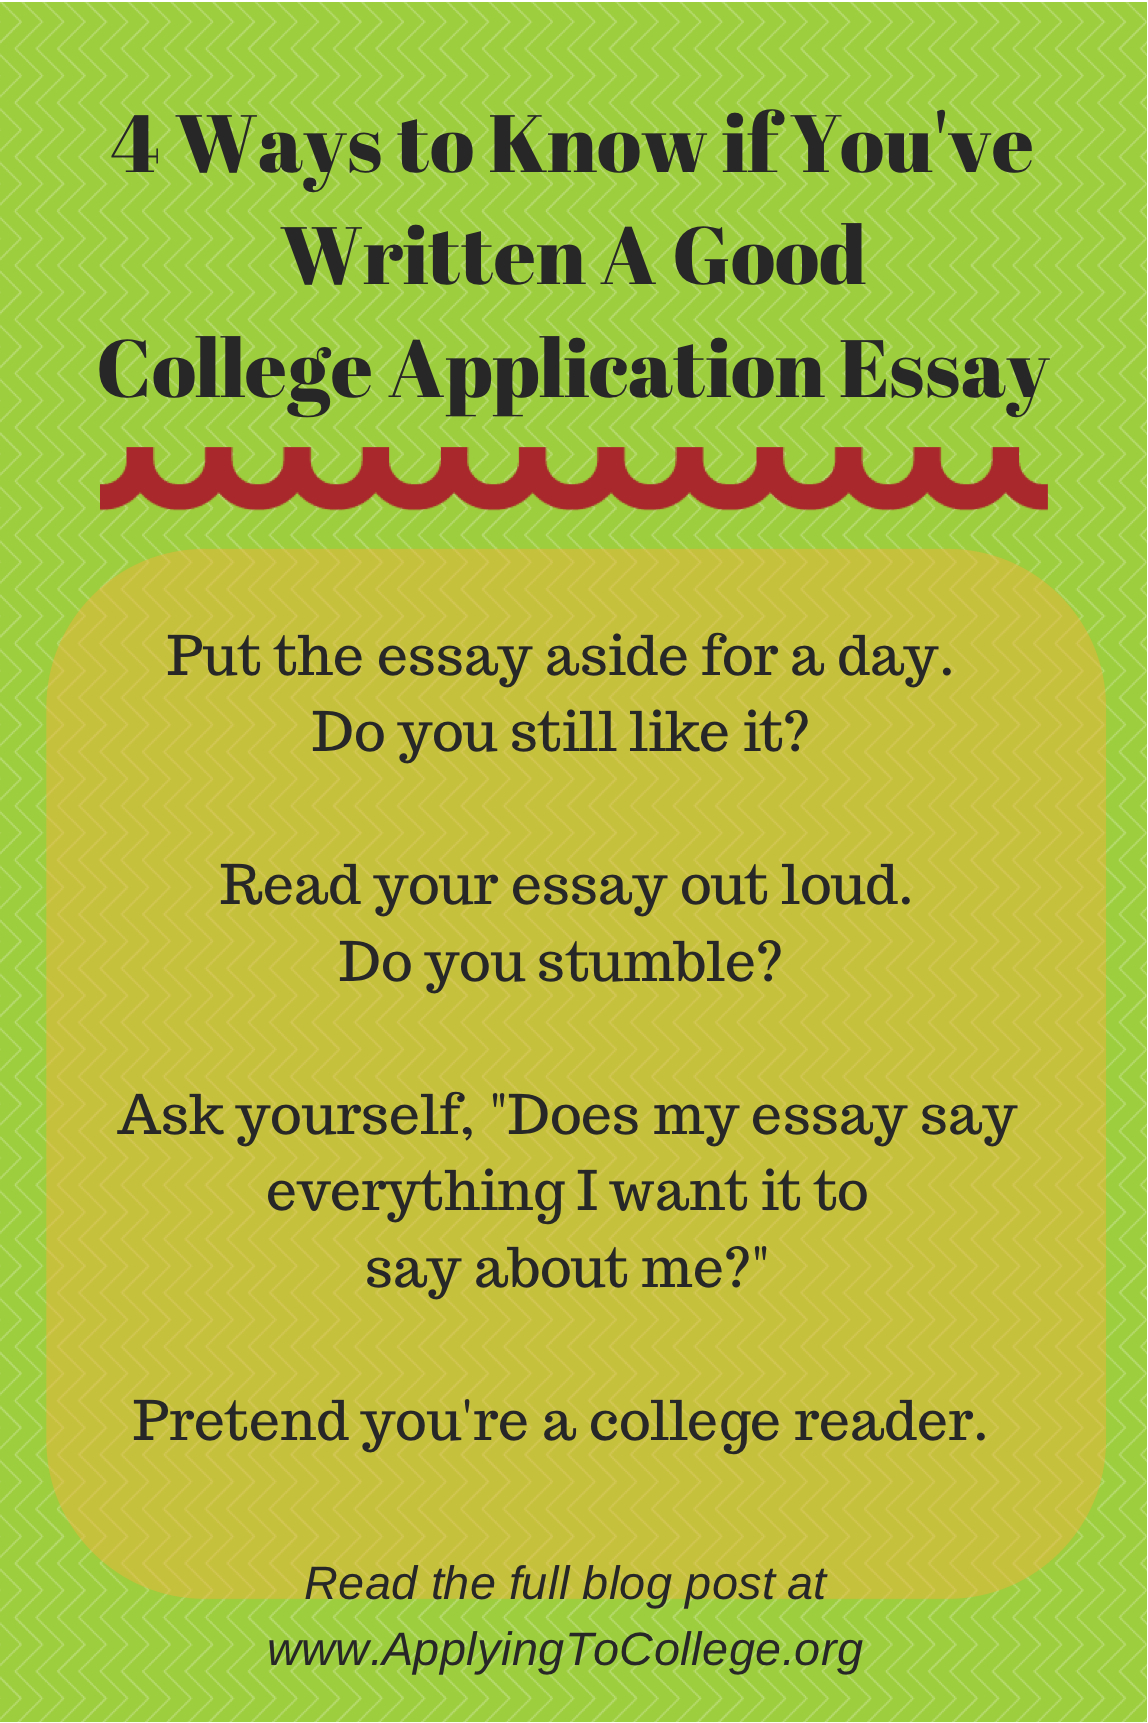 009 4ways To Know If Youve Written Good Read My Essay Unusual Online Reddit For Free Full